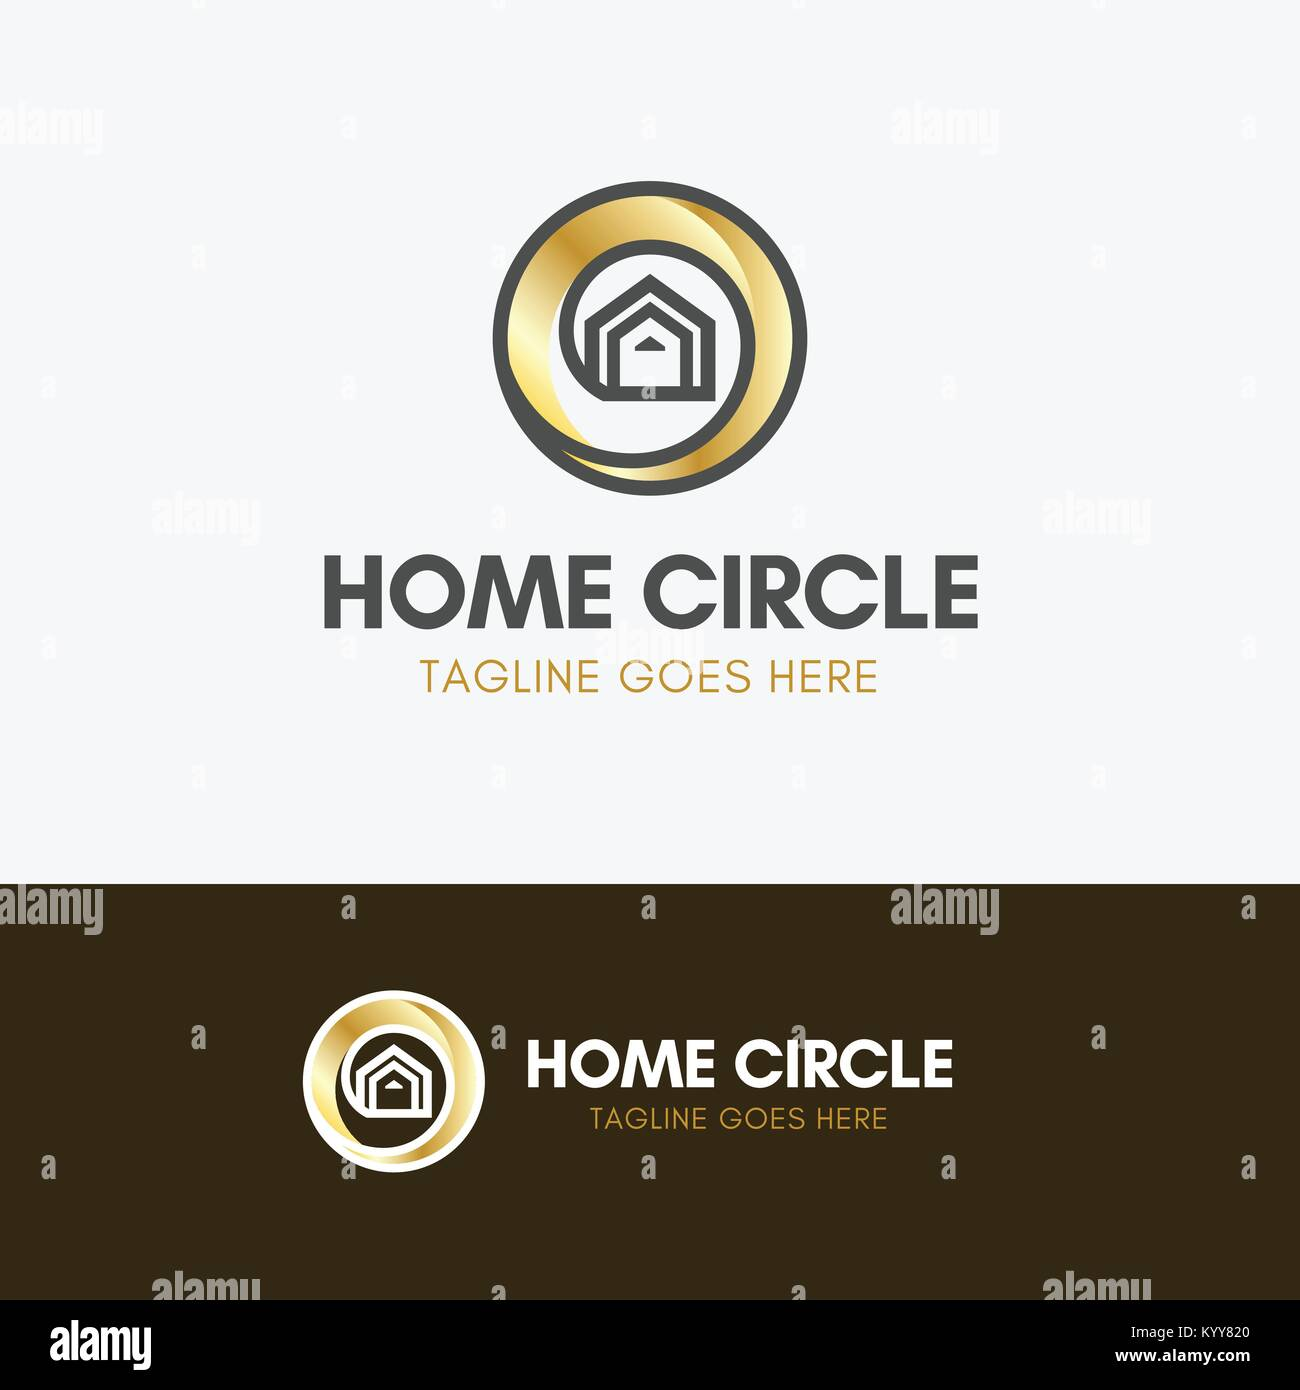 Home circle logo template element symbol in gold color stock vector home circle logo template element symbol in gold color biocorpaavc Gallery